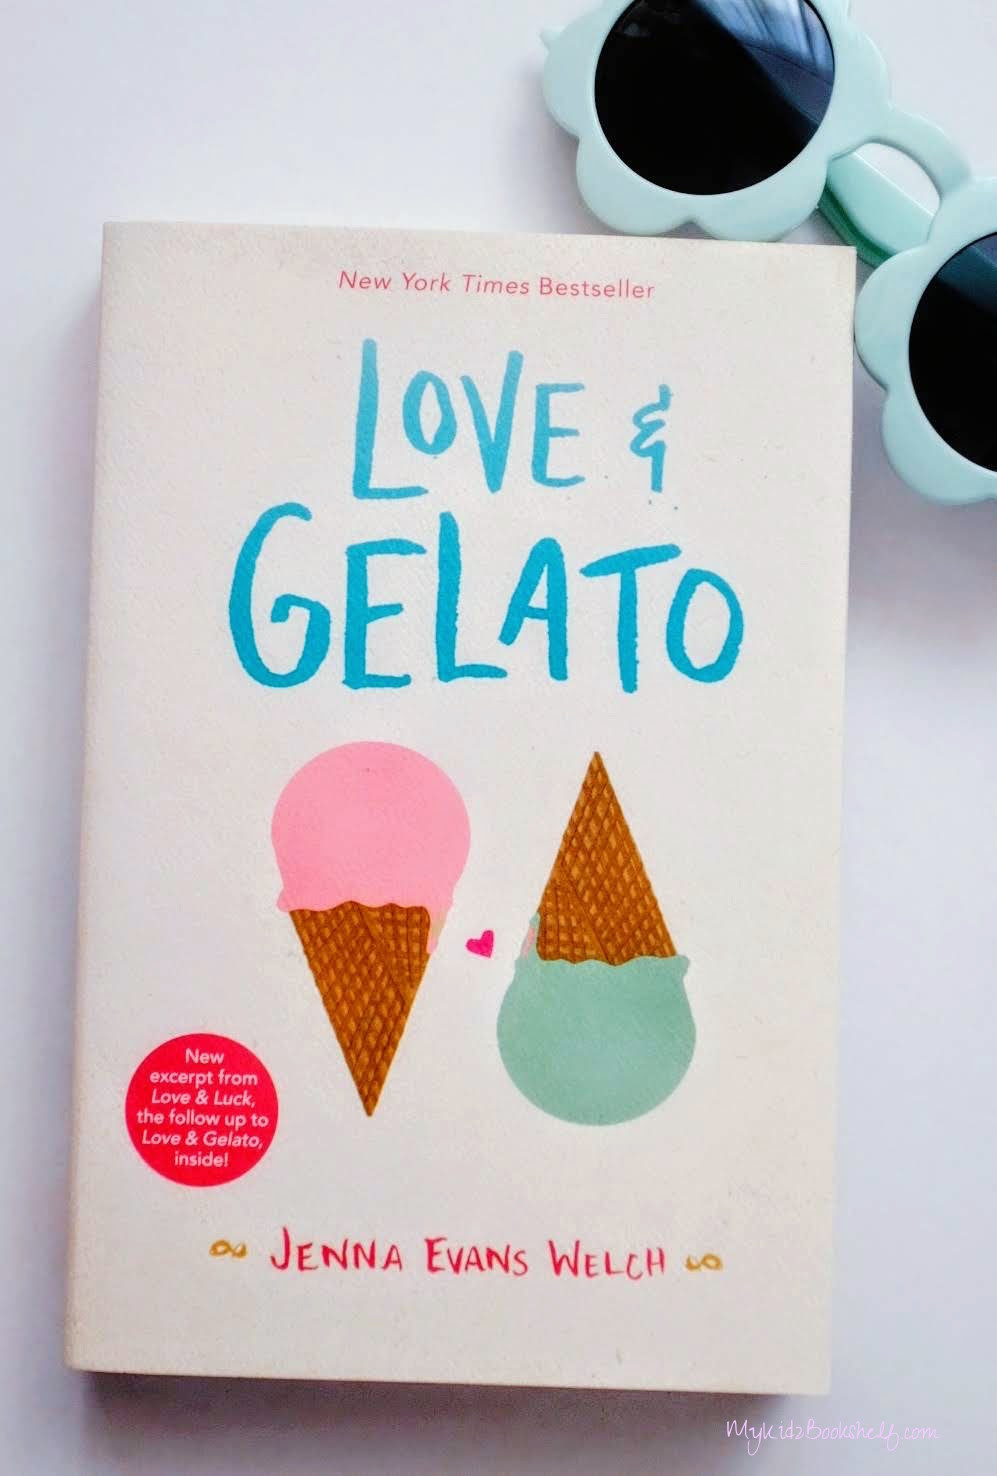 Love and Gelato by Jenna Evans Welch book cover with picture of two ice cream cones on cover